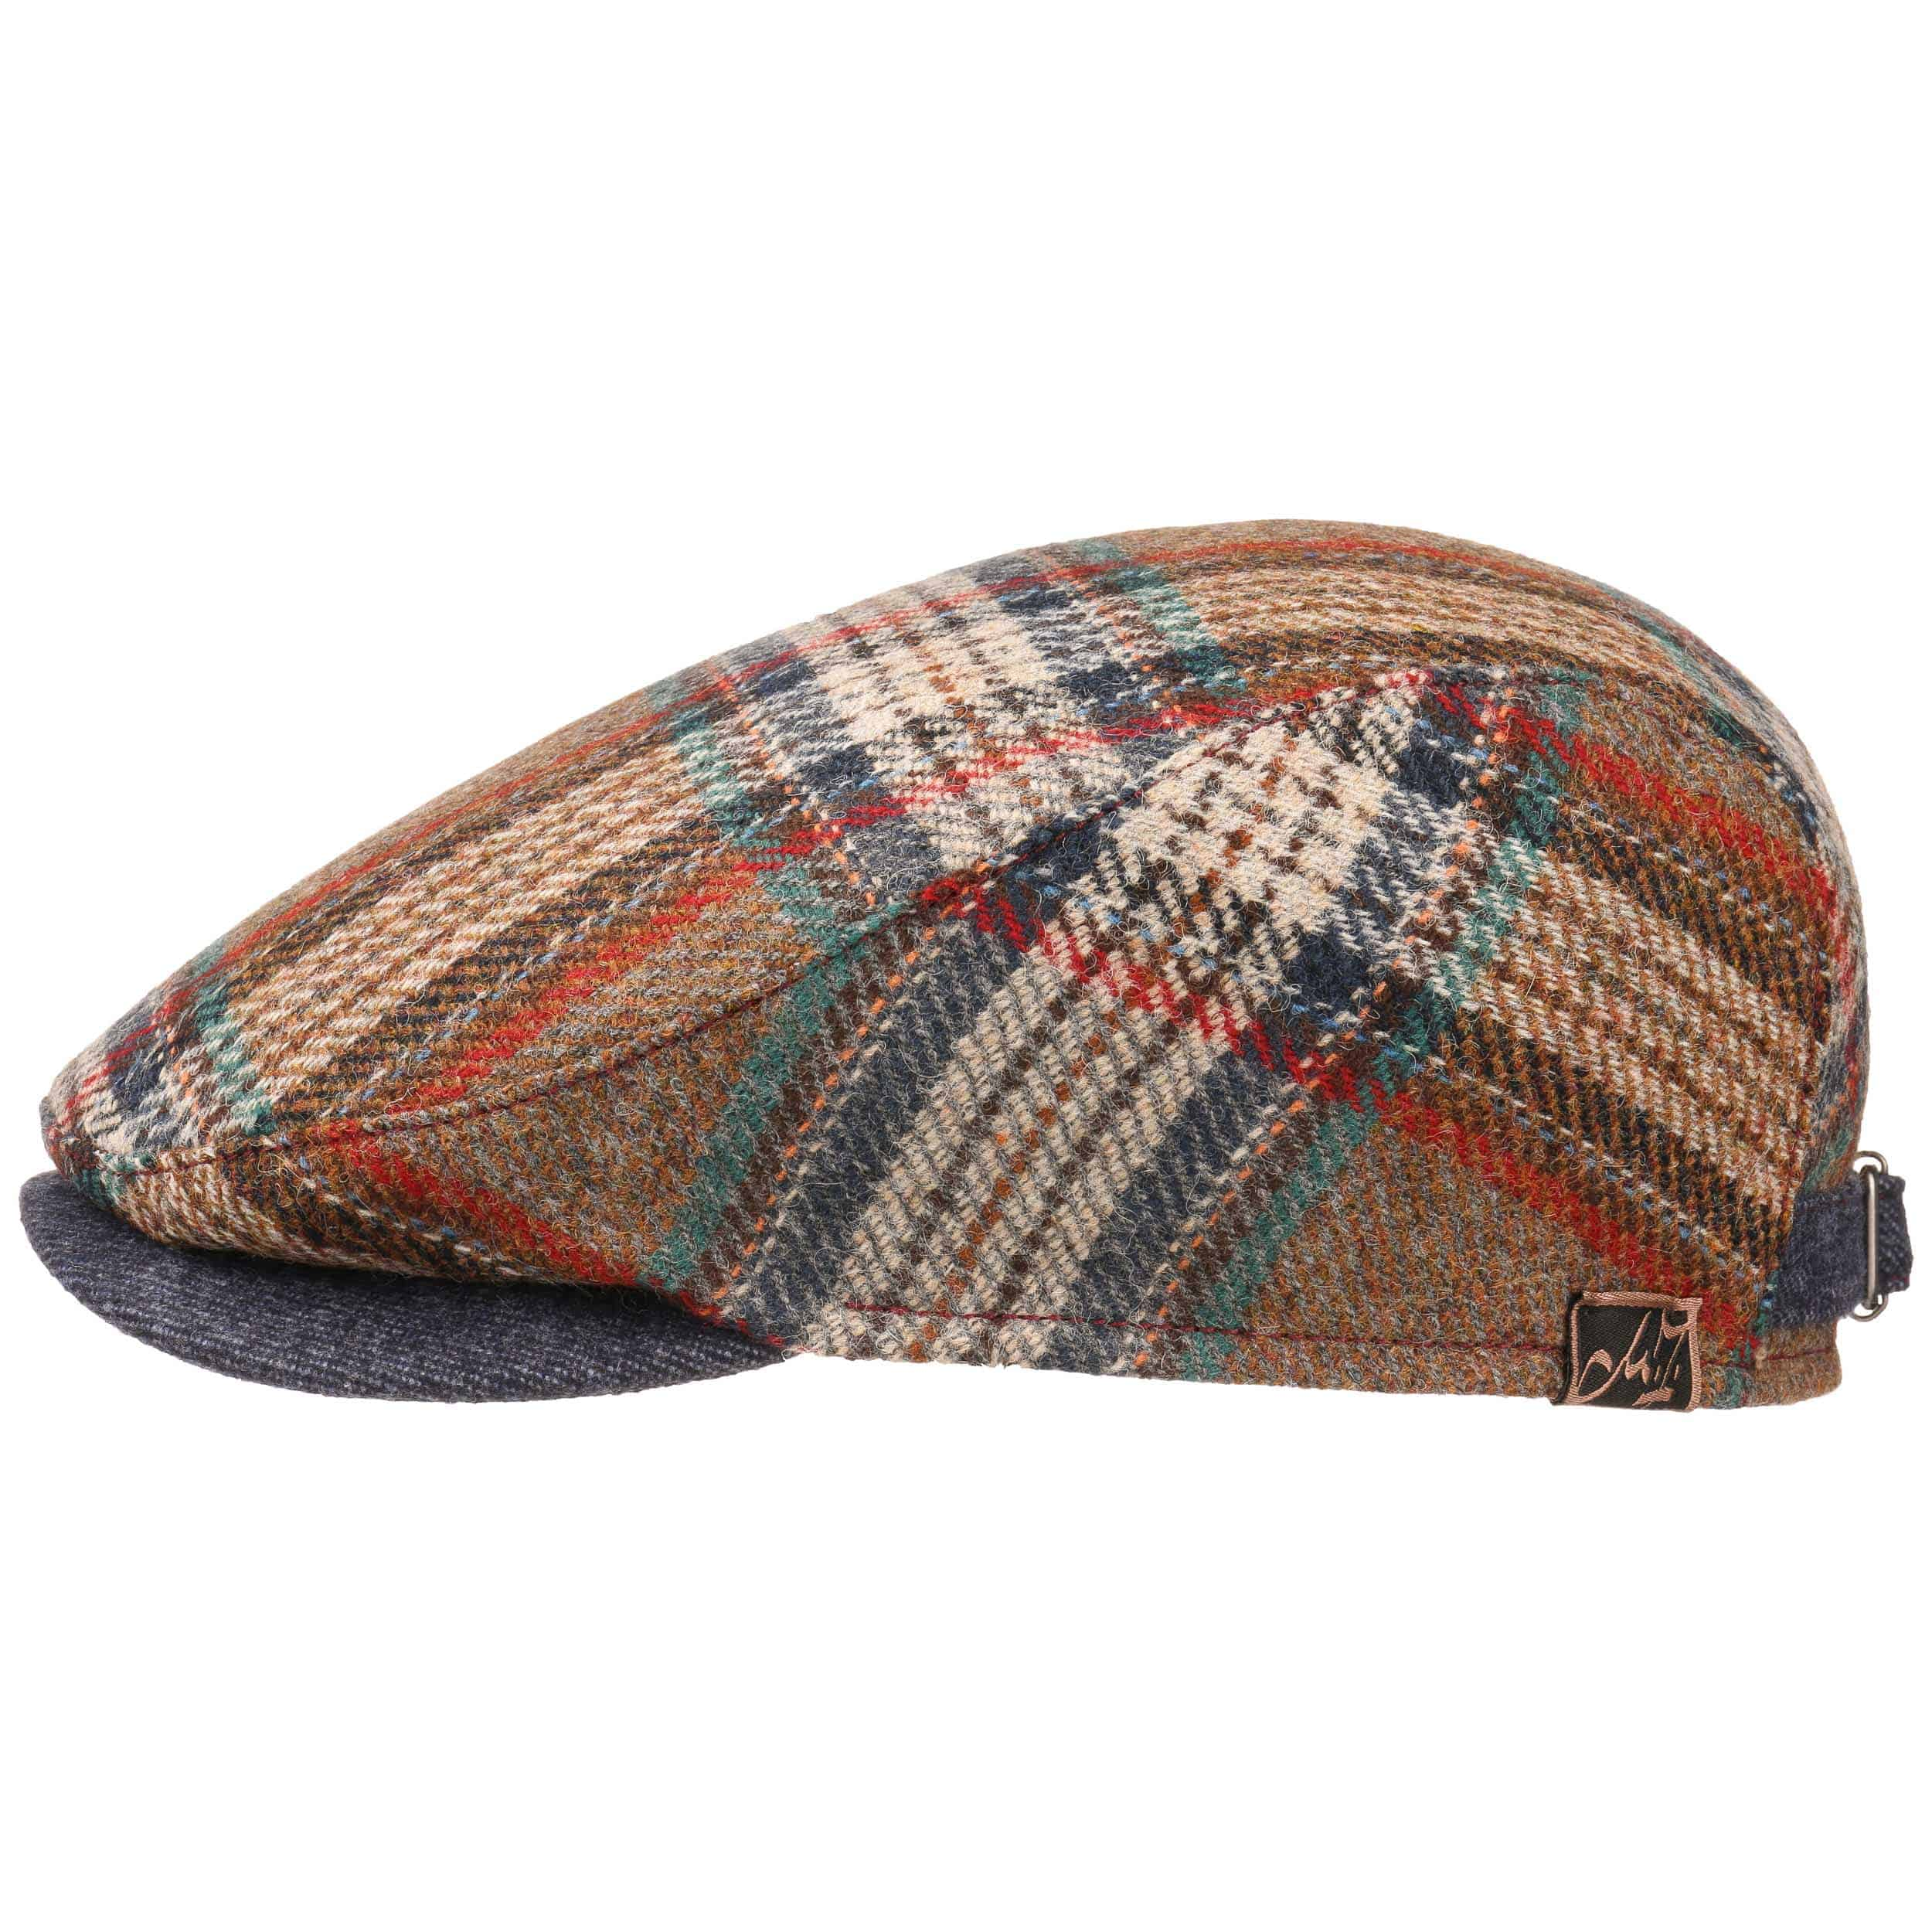 3059bcf53 Aurel Virgin Wool Flat Cap by Mayser